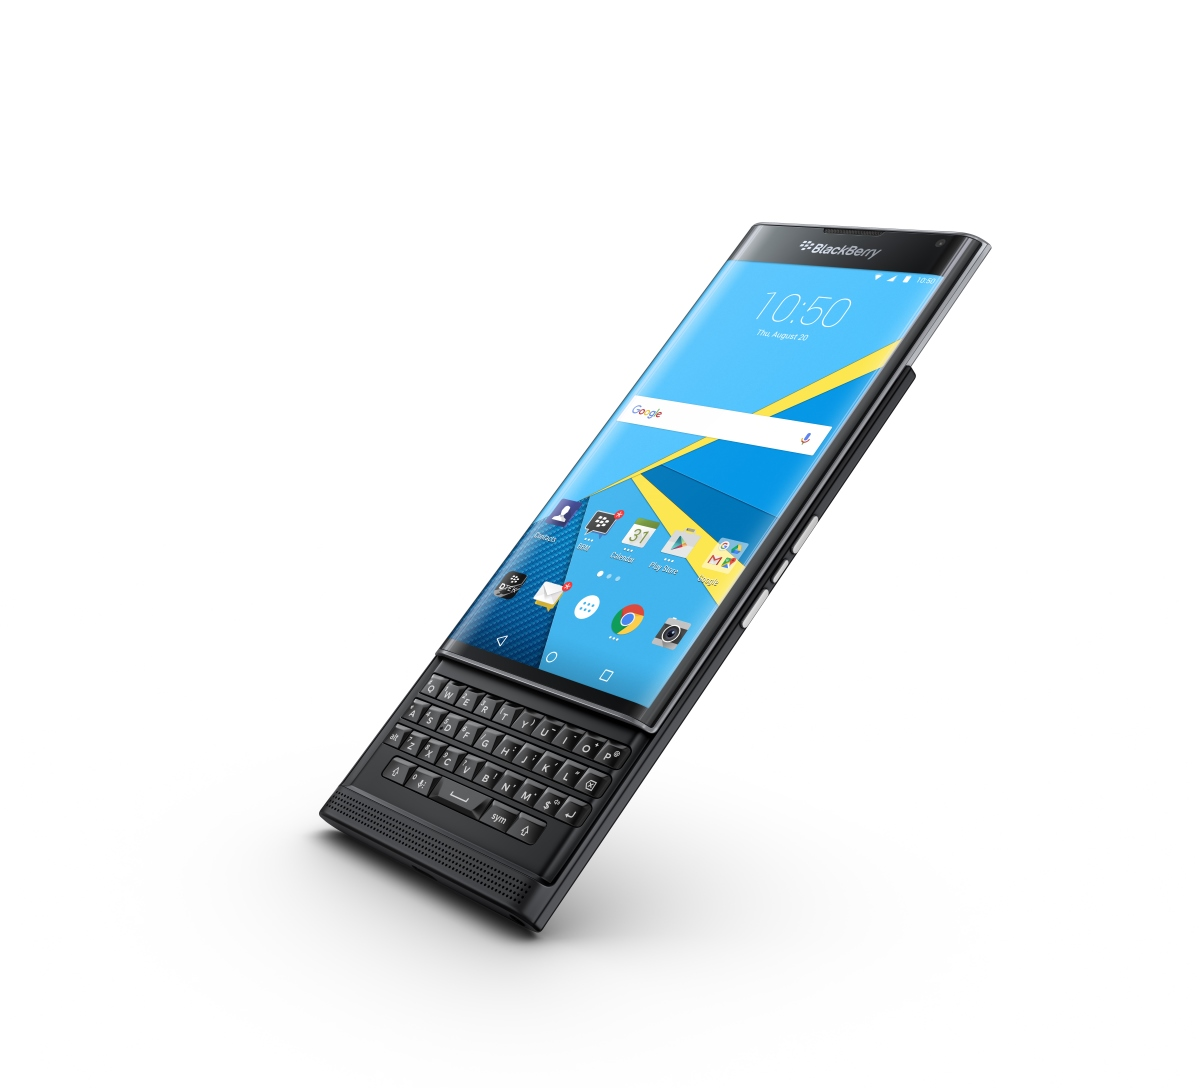 Has the Priv Started a Turnaround for BlackBerry?